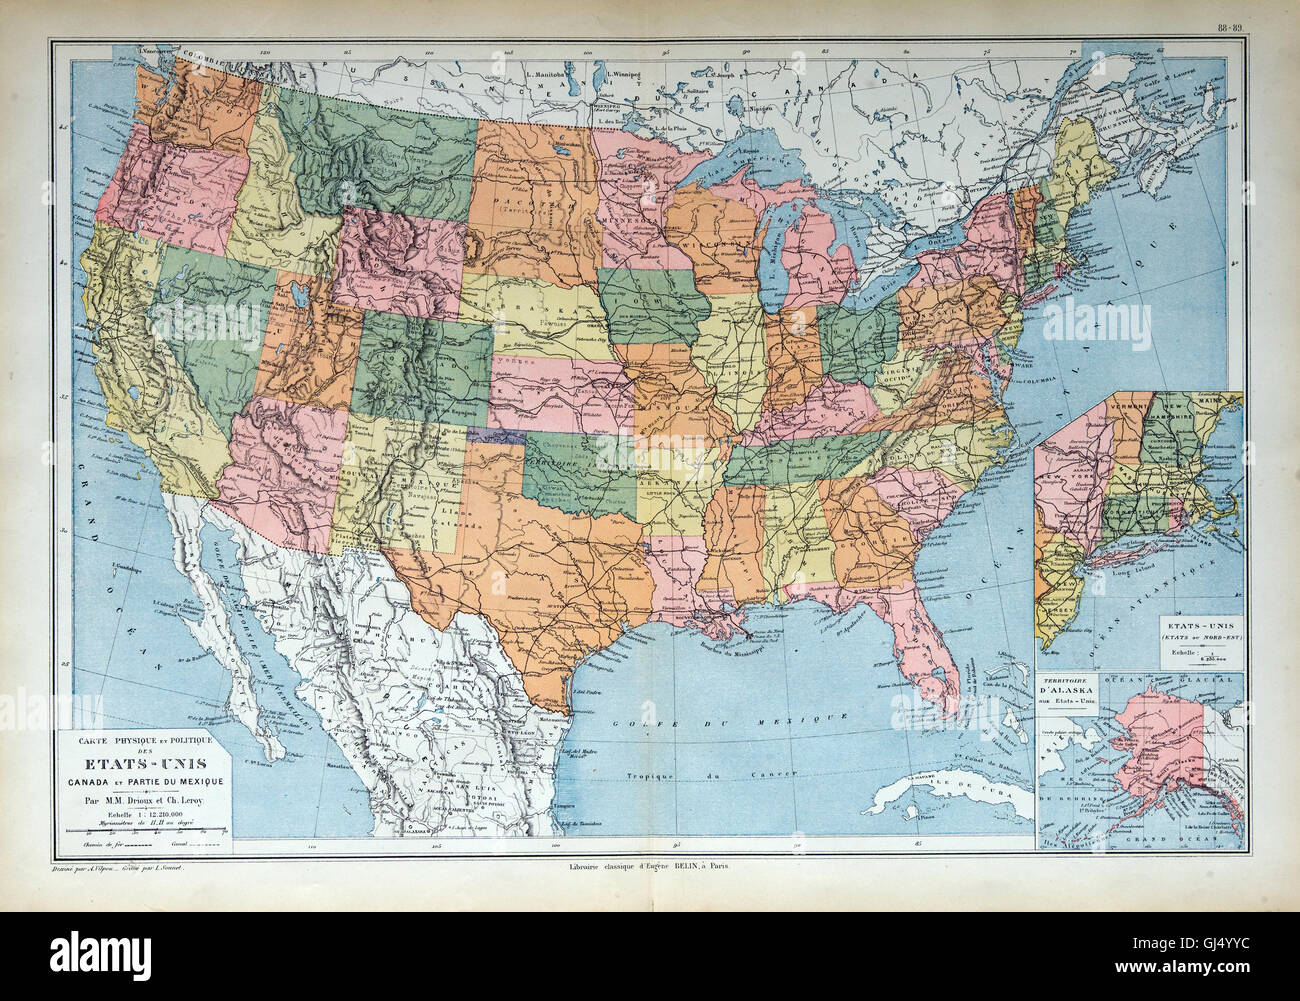 Old Map Of America US USA United States Stock Photo - Old map of the us